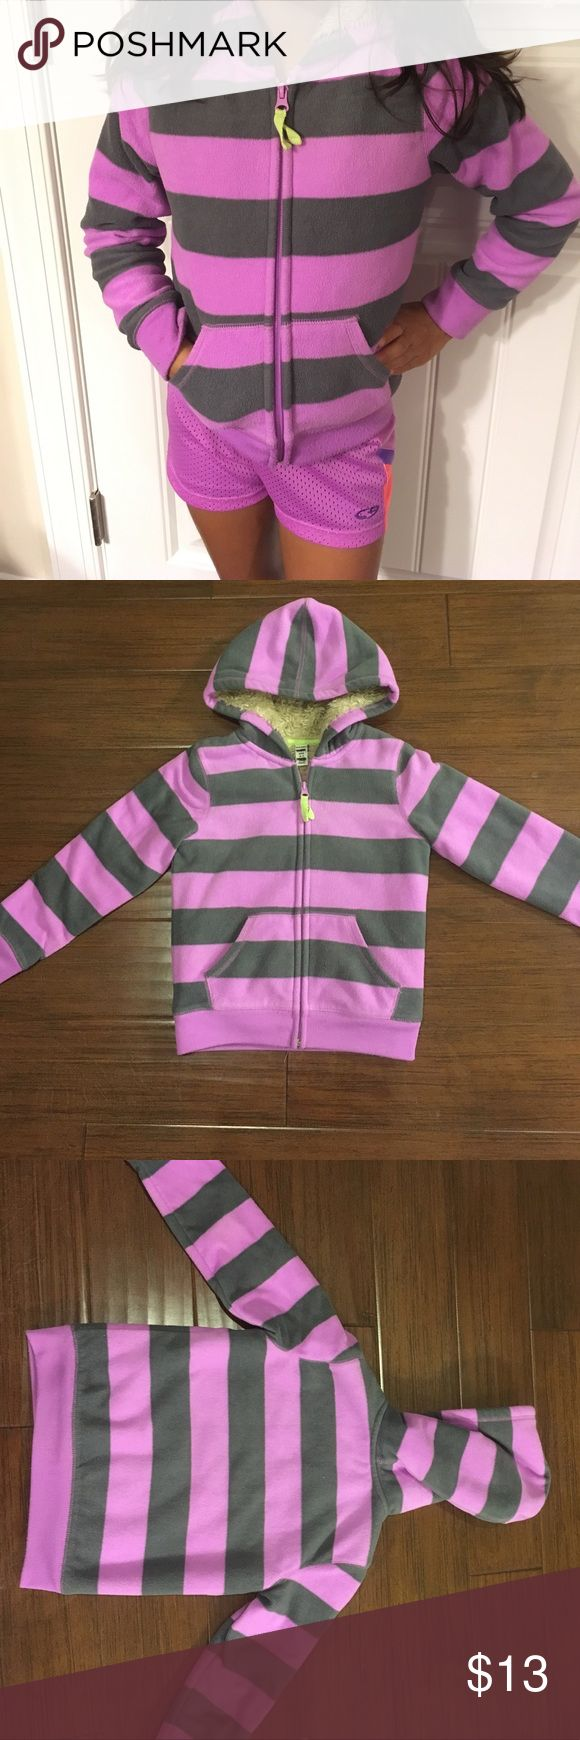 OLD NAVY FLEECE JACKET Old Navy hooded fleece jacket.   Very soft fleece jacket for pre-winter temperatures. Some stains on the cuffs. See pic 4. Some pilling on cuffs but not noticeable.   DON'T FORGET TO BUNDLE 😊  Offers are welcomed. I negotiate. Ask any questions before purchasing. Old Navy Jackets & Coats